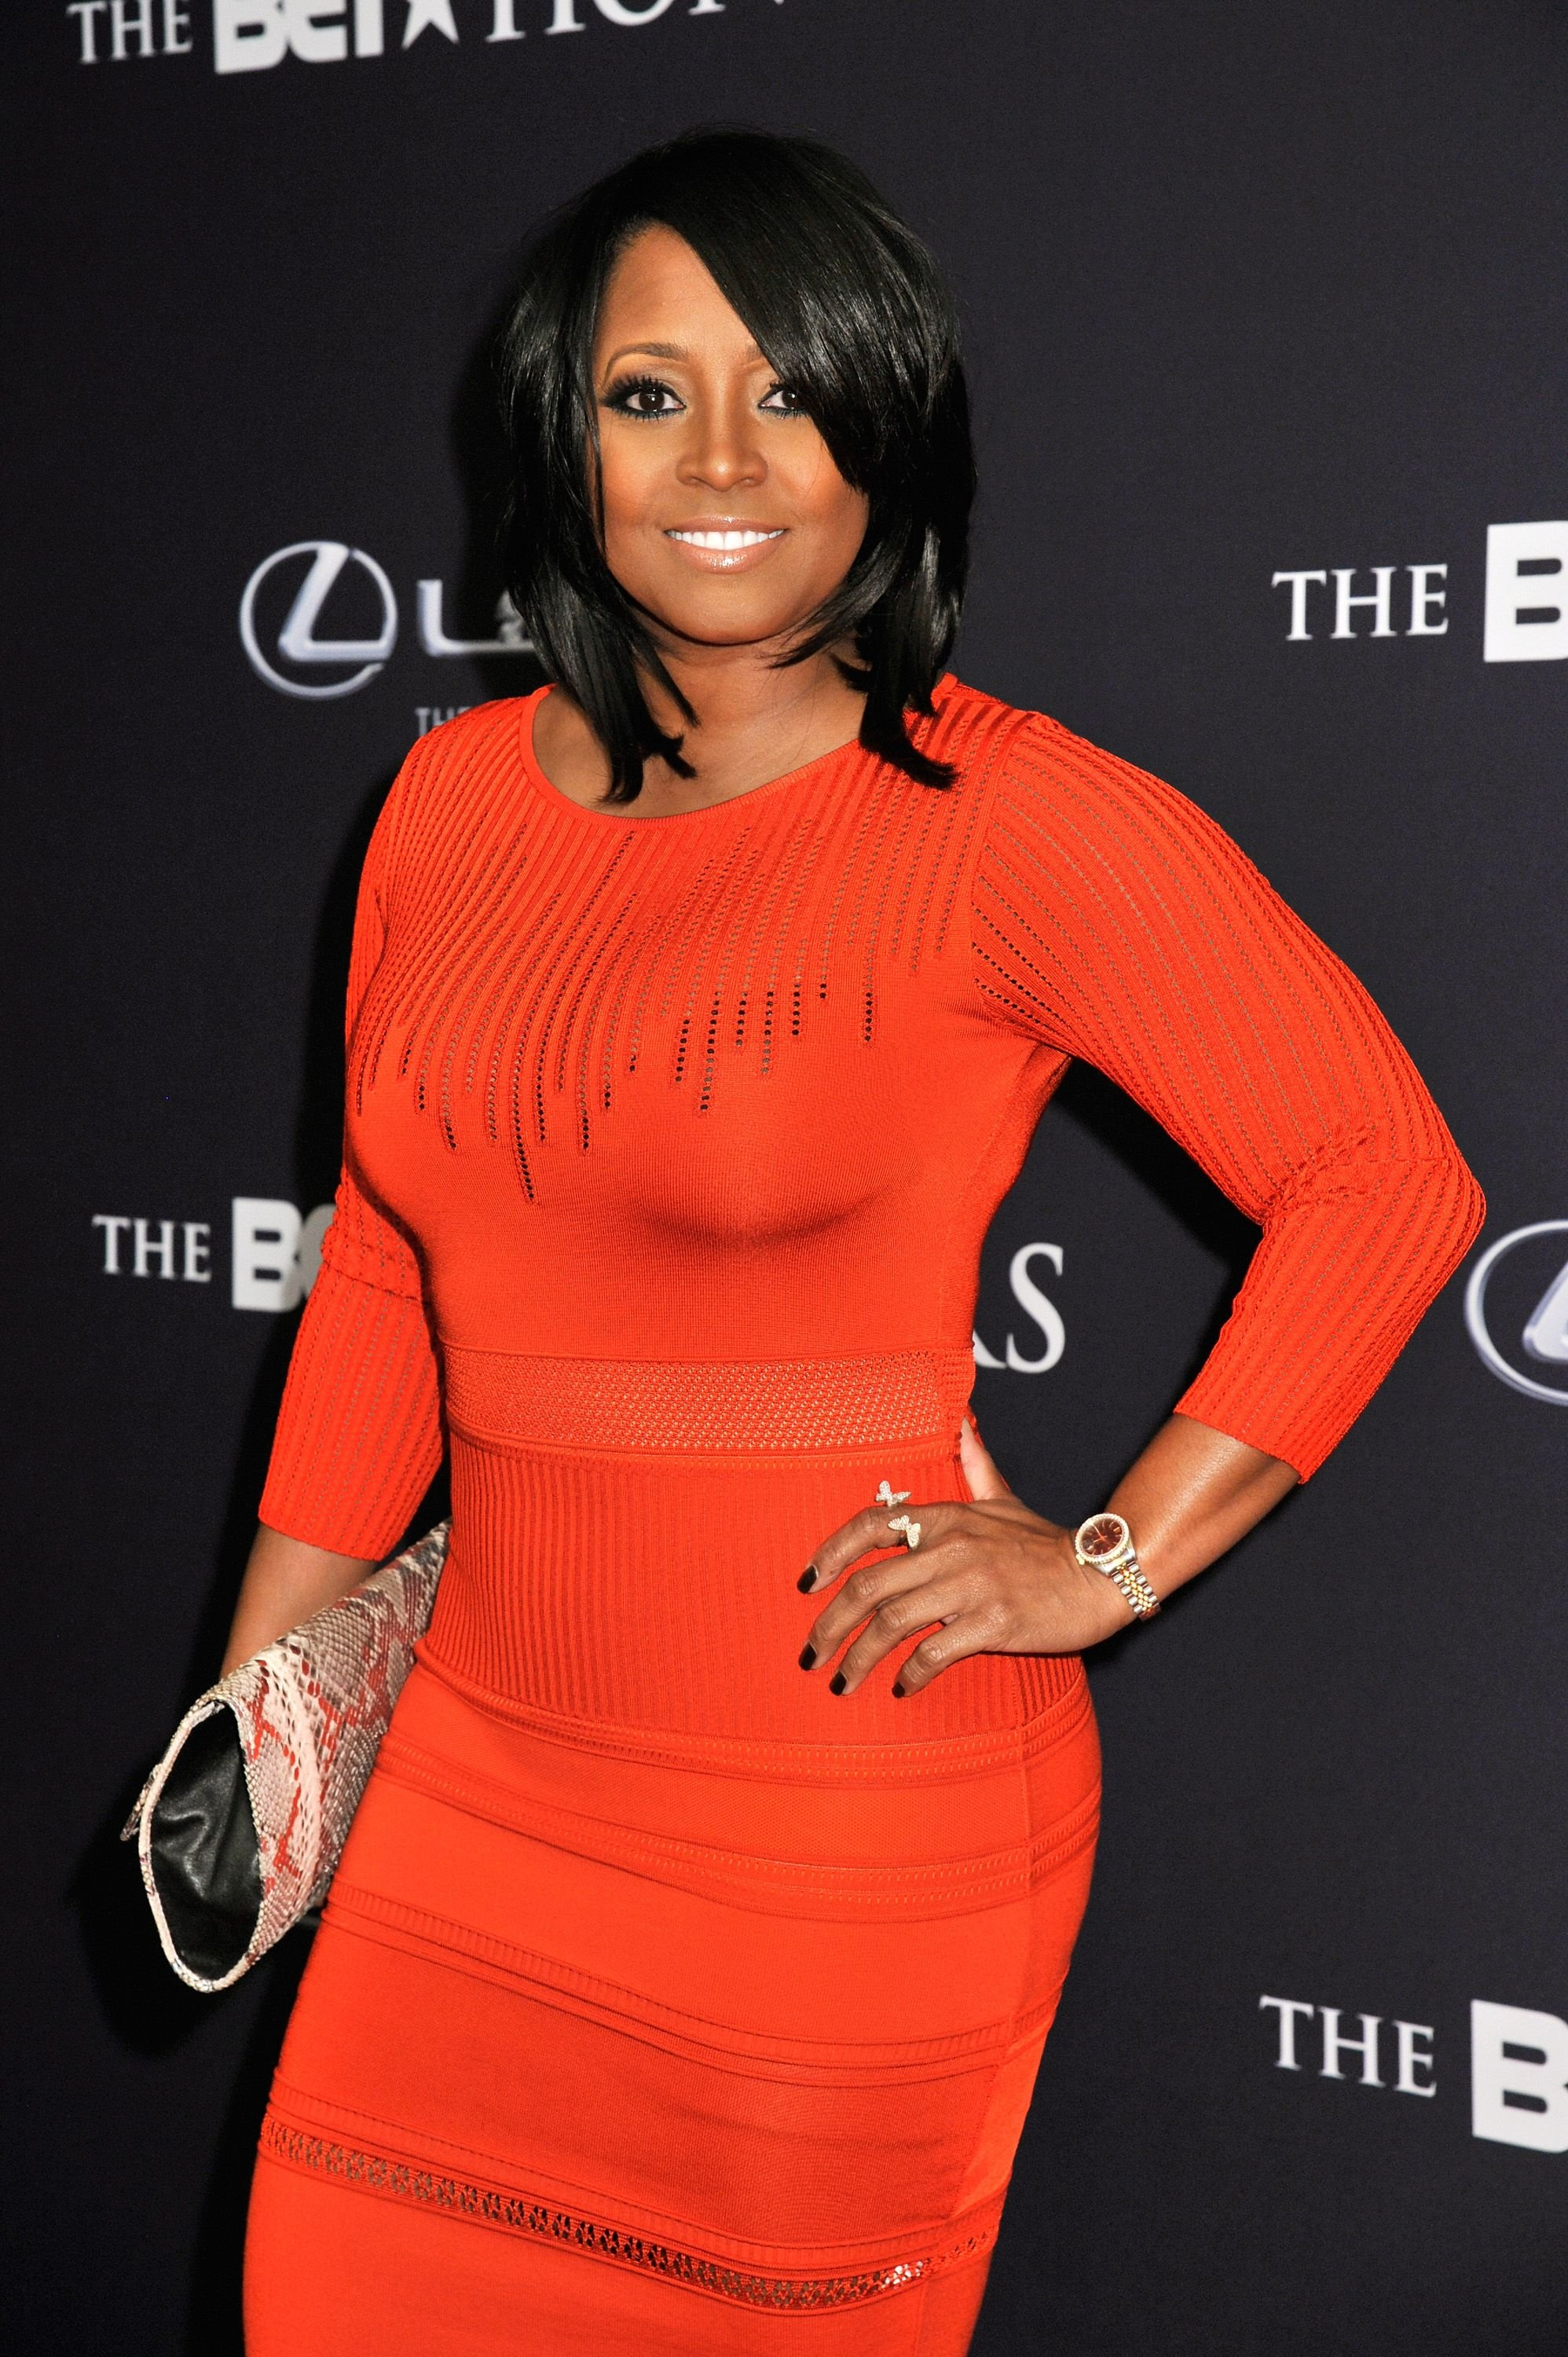 Keshia Knight Pulliam during the BET Honors 2015 at Warner Theatre on January 24, 2015 in Washington, DC.   Source: Getty Images